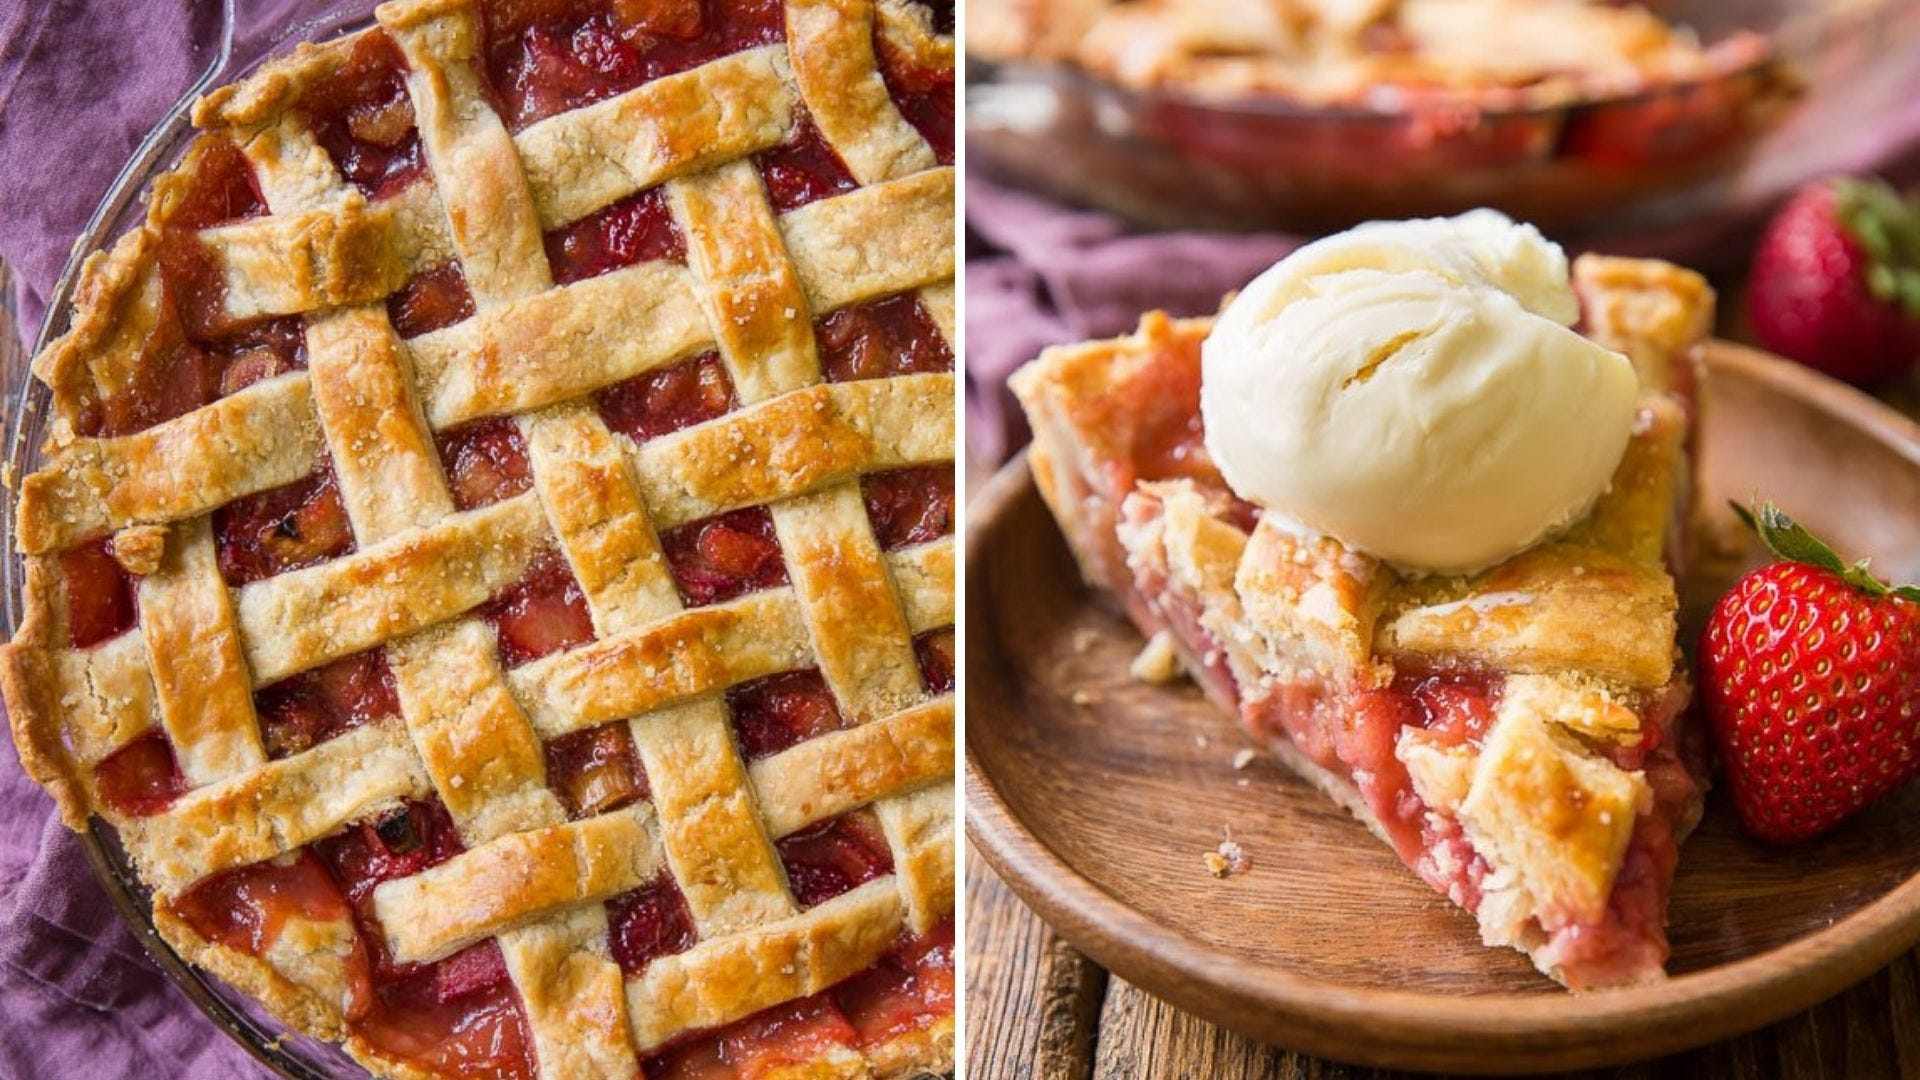 A whole strawberry and rhubarb pie and a slice of pie with ice cream on a plate.